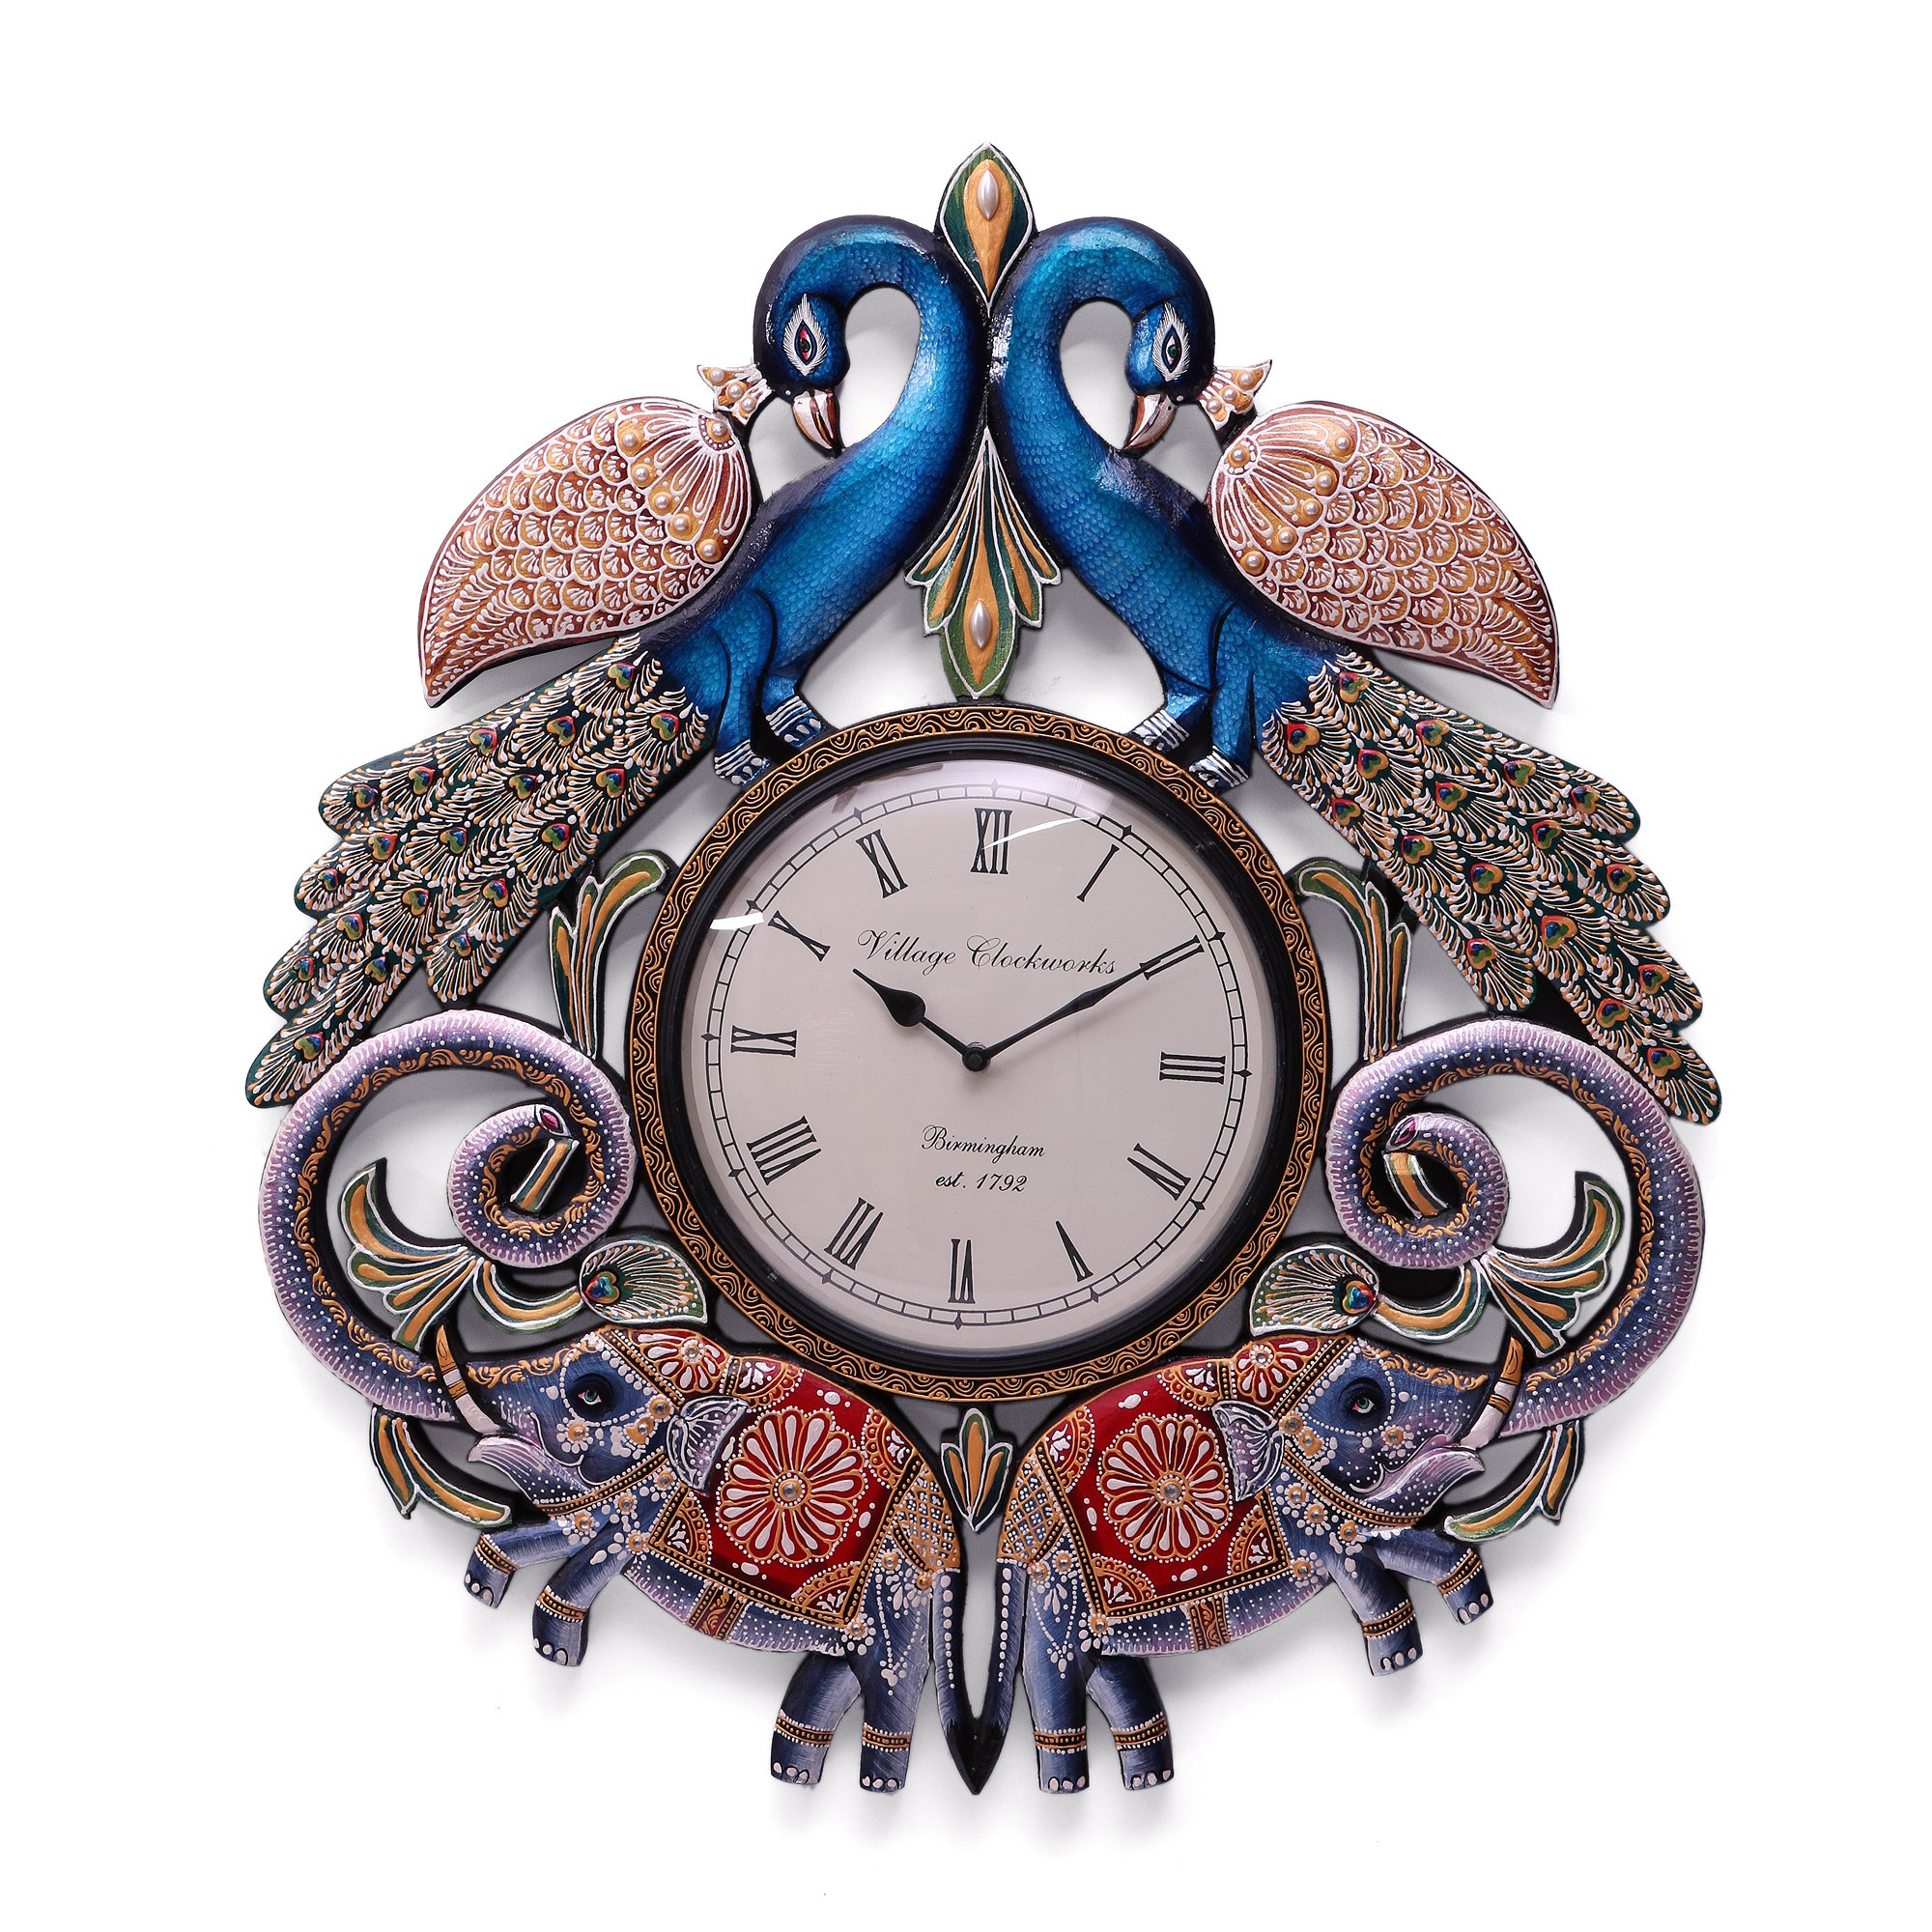 CraftVatika Handmade Wall Clock - 2.1 FT Large Peacock Elephant Hand Carved Painted Wooden Clock Wall Sculpture by CraftVatika (Image #2)